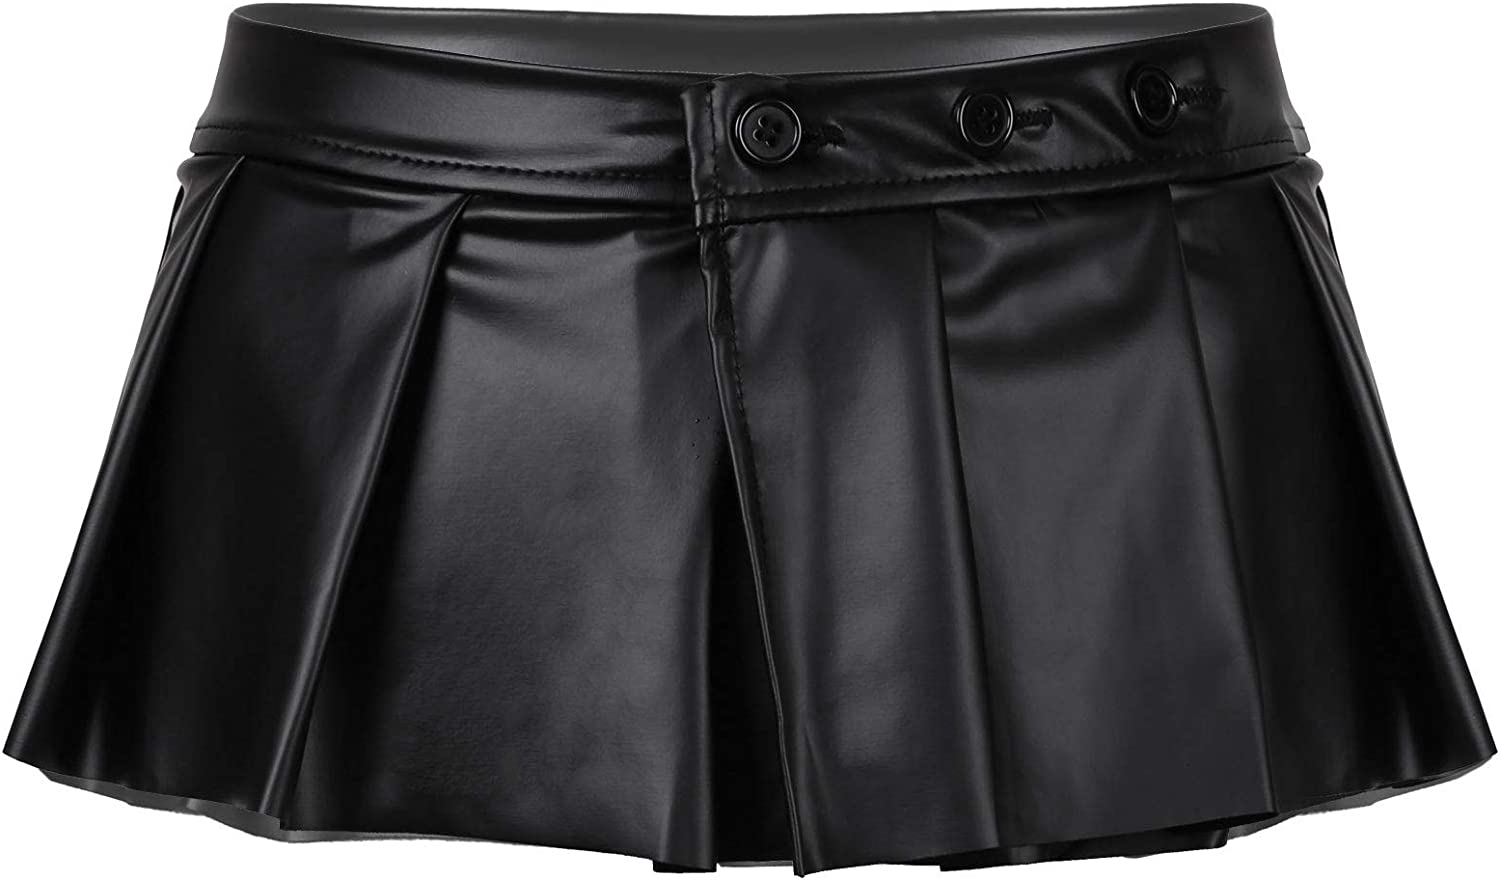 Oyolan Womens Casual PU Leather Flared A-Line Skirt Schoolgirl Outfits Pleated Mini Skirts Clubwear